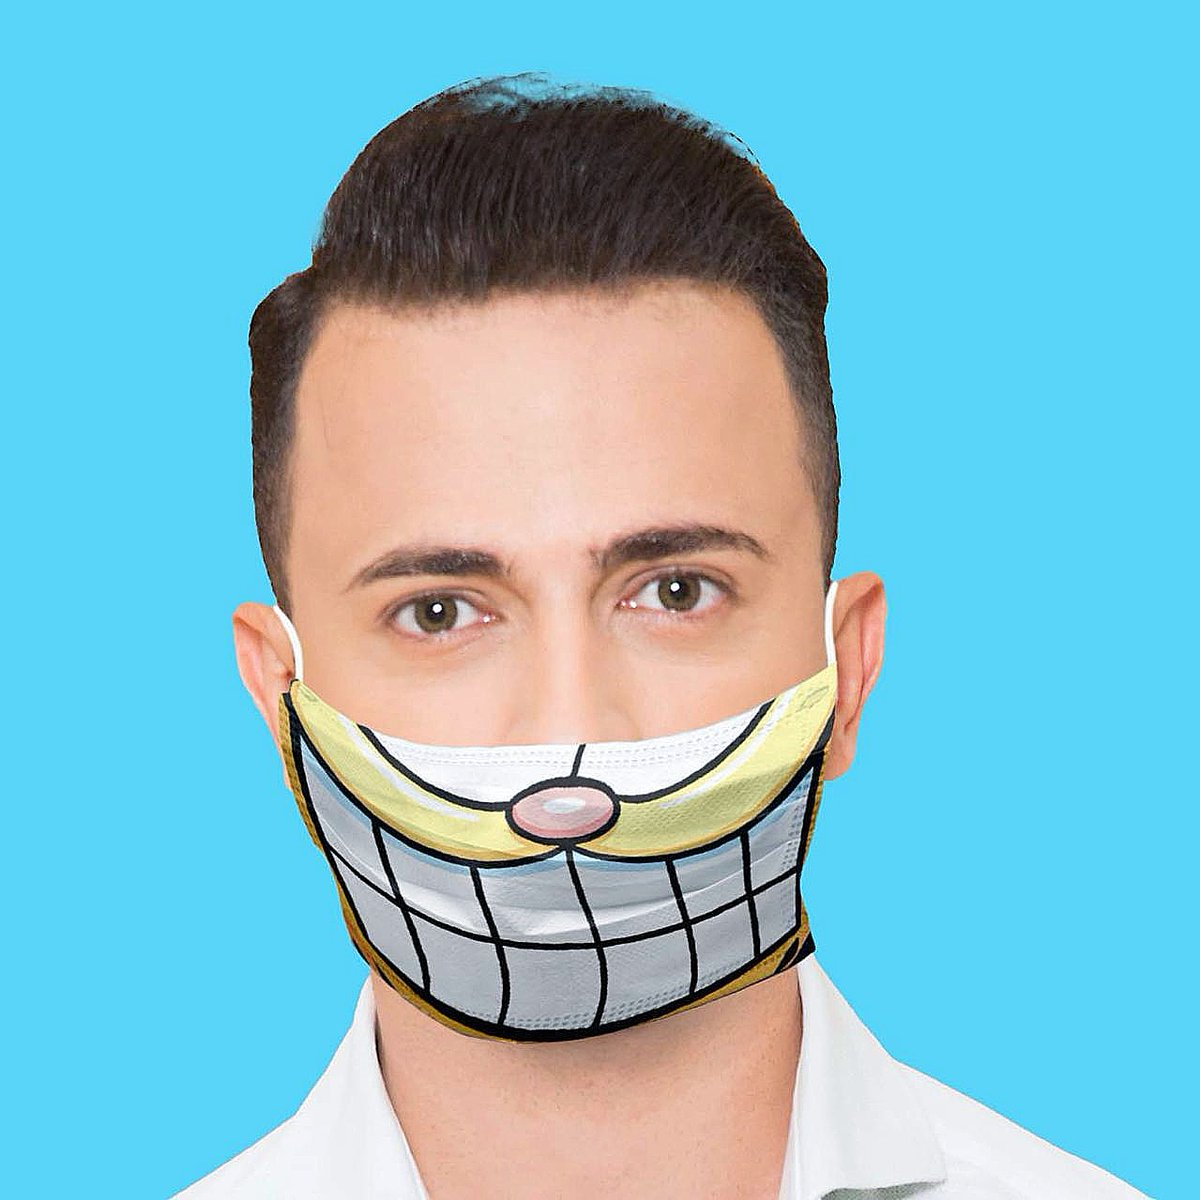 Garfieldeats On Twitter Garfieldeats Stands With The First Responders Surgeons Nurses Doctors Hospital Workers Who Save Lives By Risking Their Lives Garfield Masks Available Soon On Our Website App Restaurants